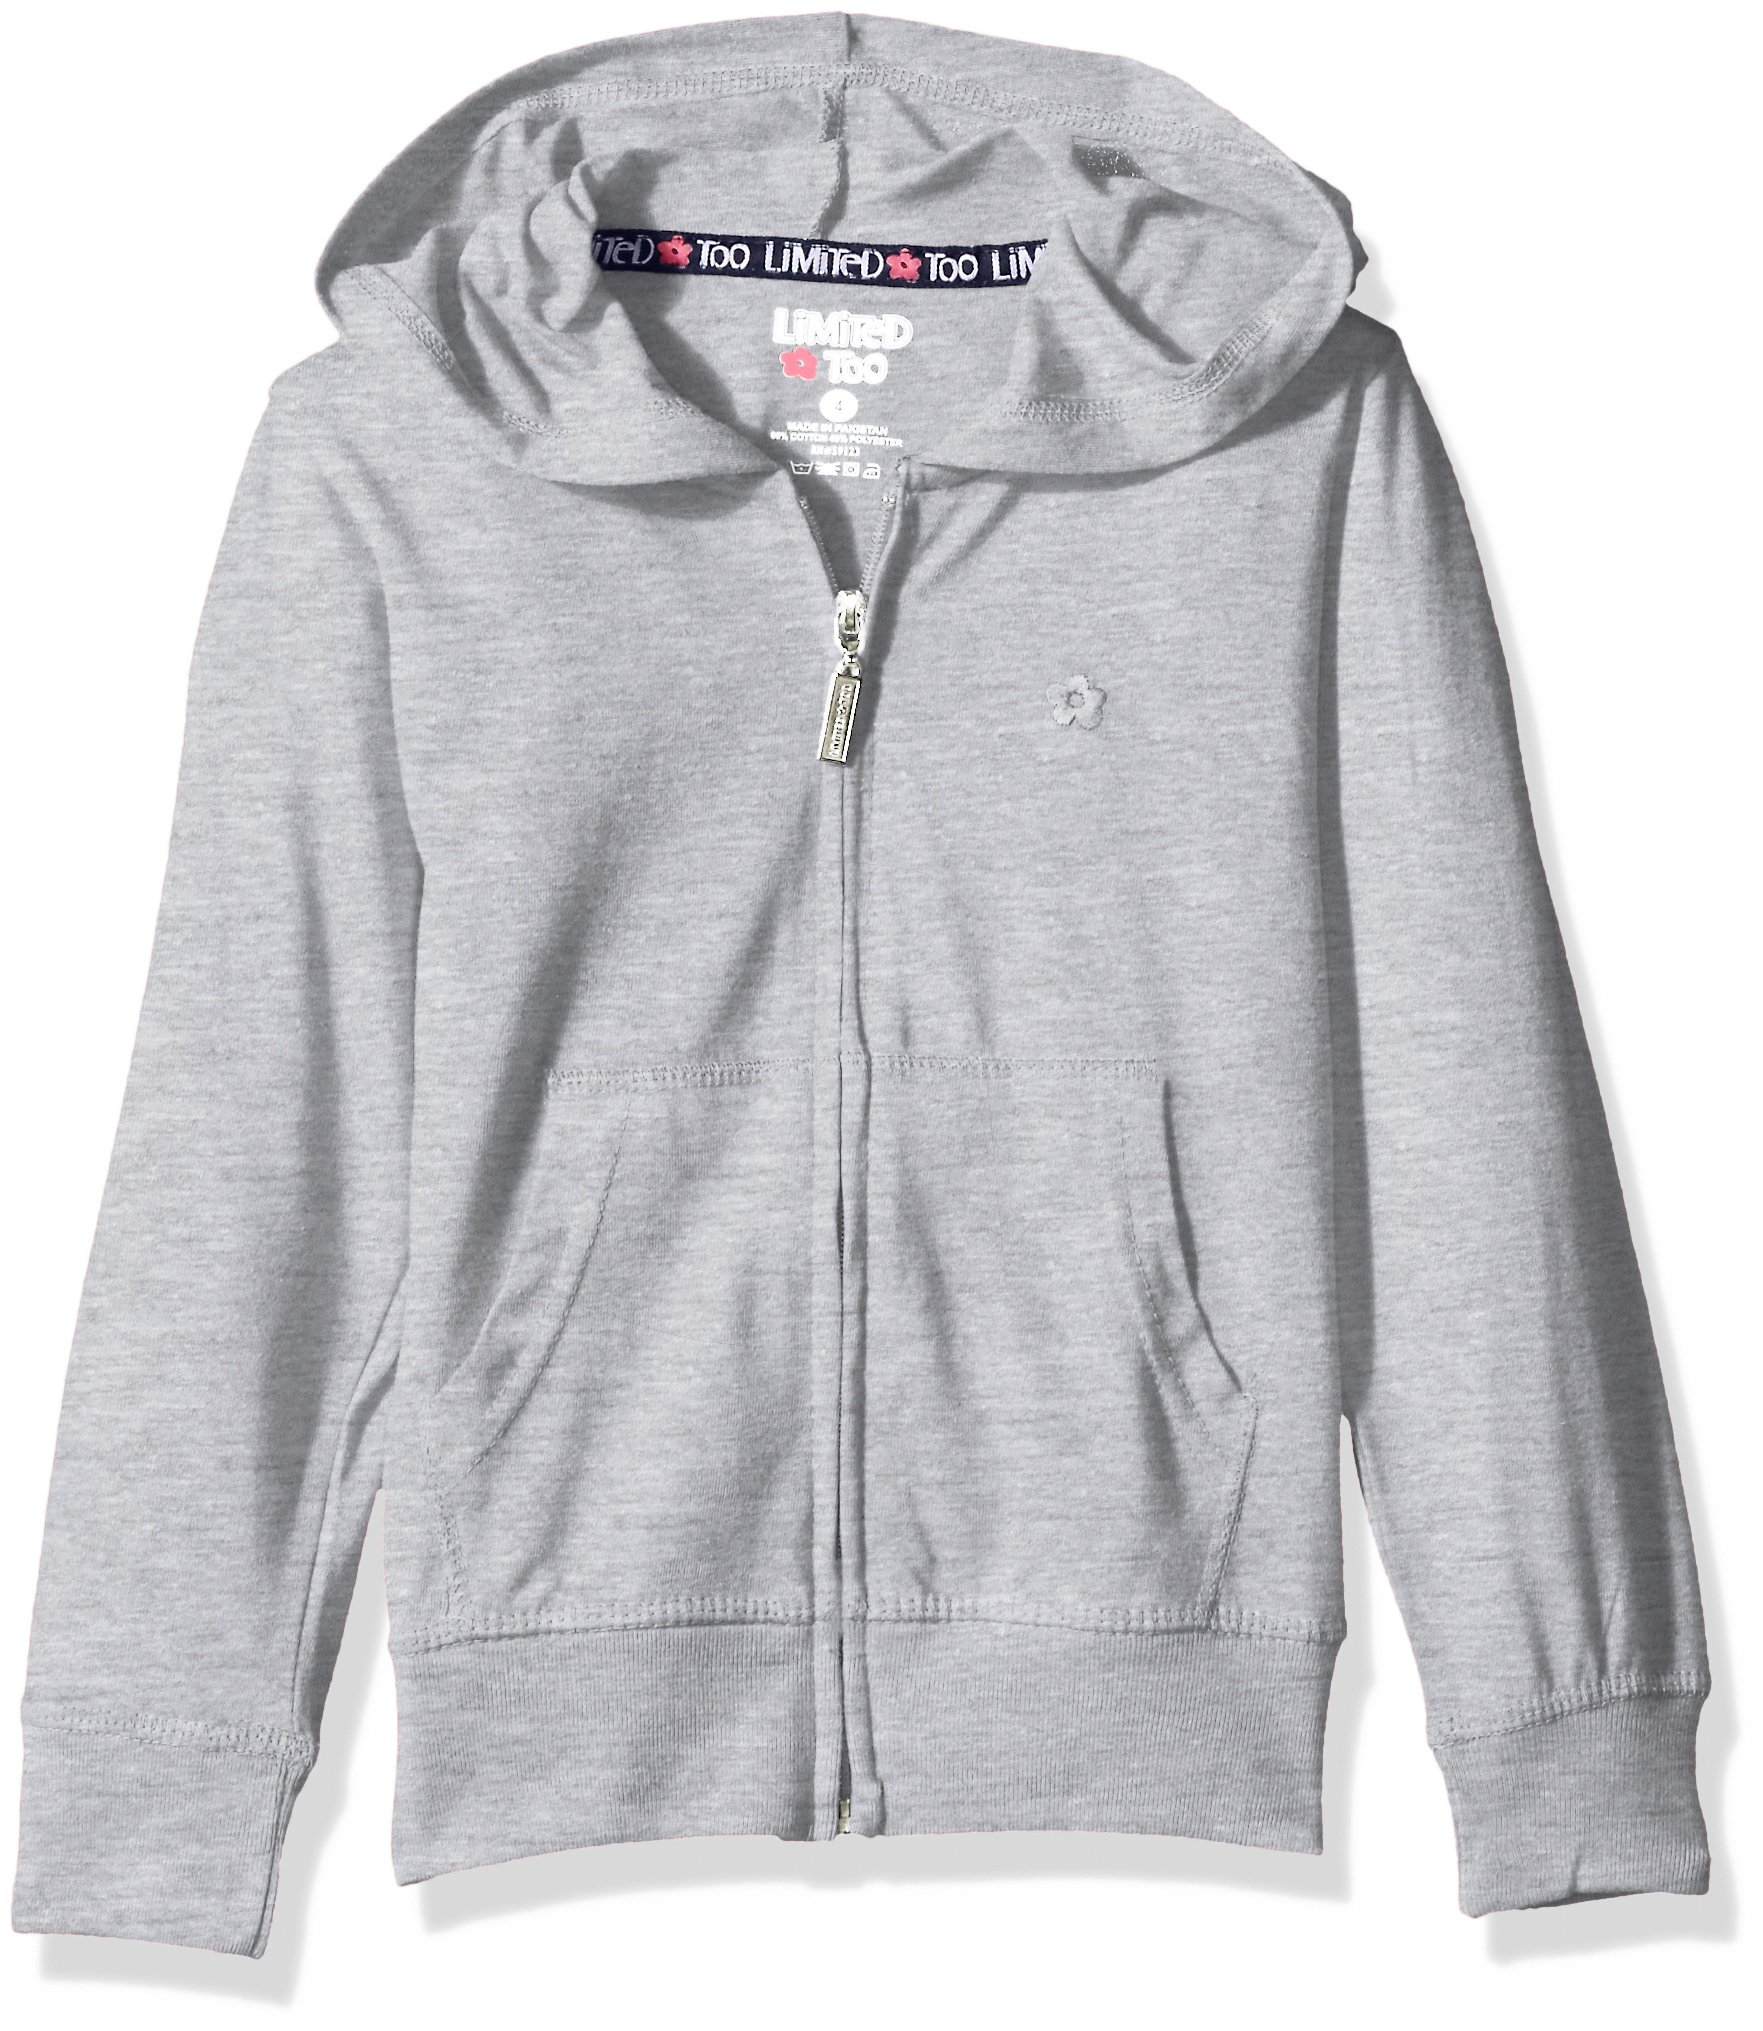 Limited Too Girls' Long Sleeve Zip Front Jersey Hoodie,Heather Grey,4